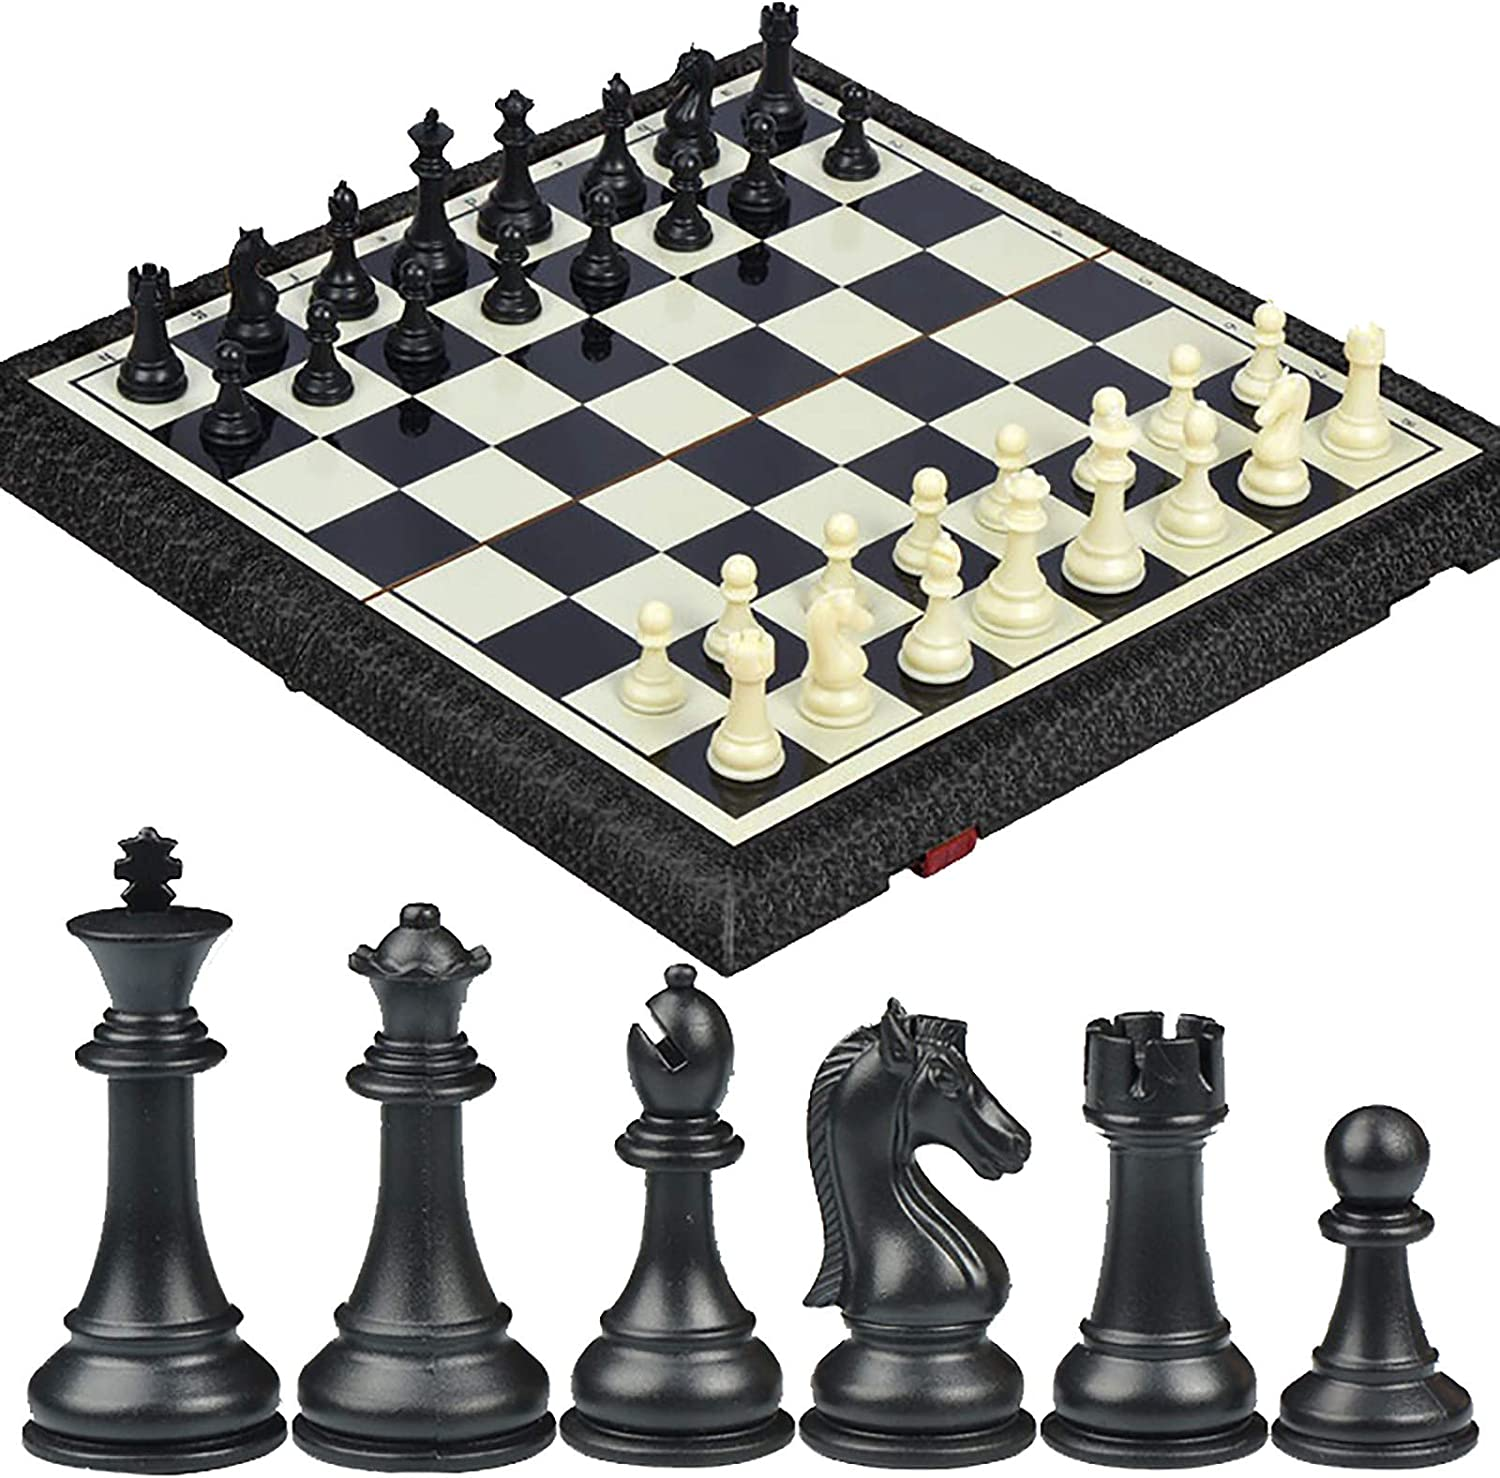 Zdcdy Magnetic Bombing free shipping Max 57% OFF Travel Chess Set Traditional Game with Fol